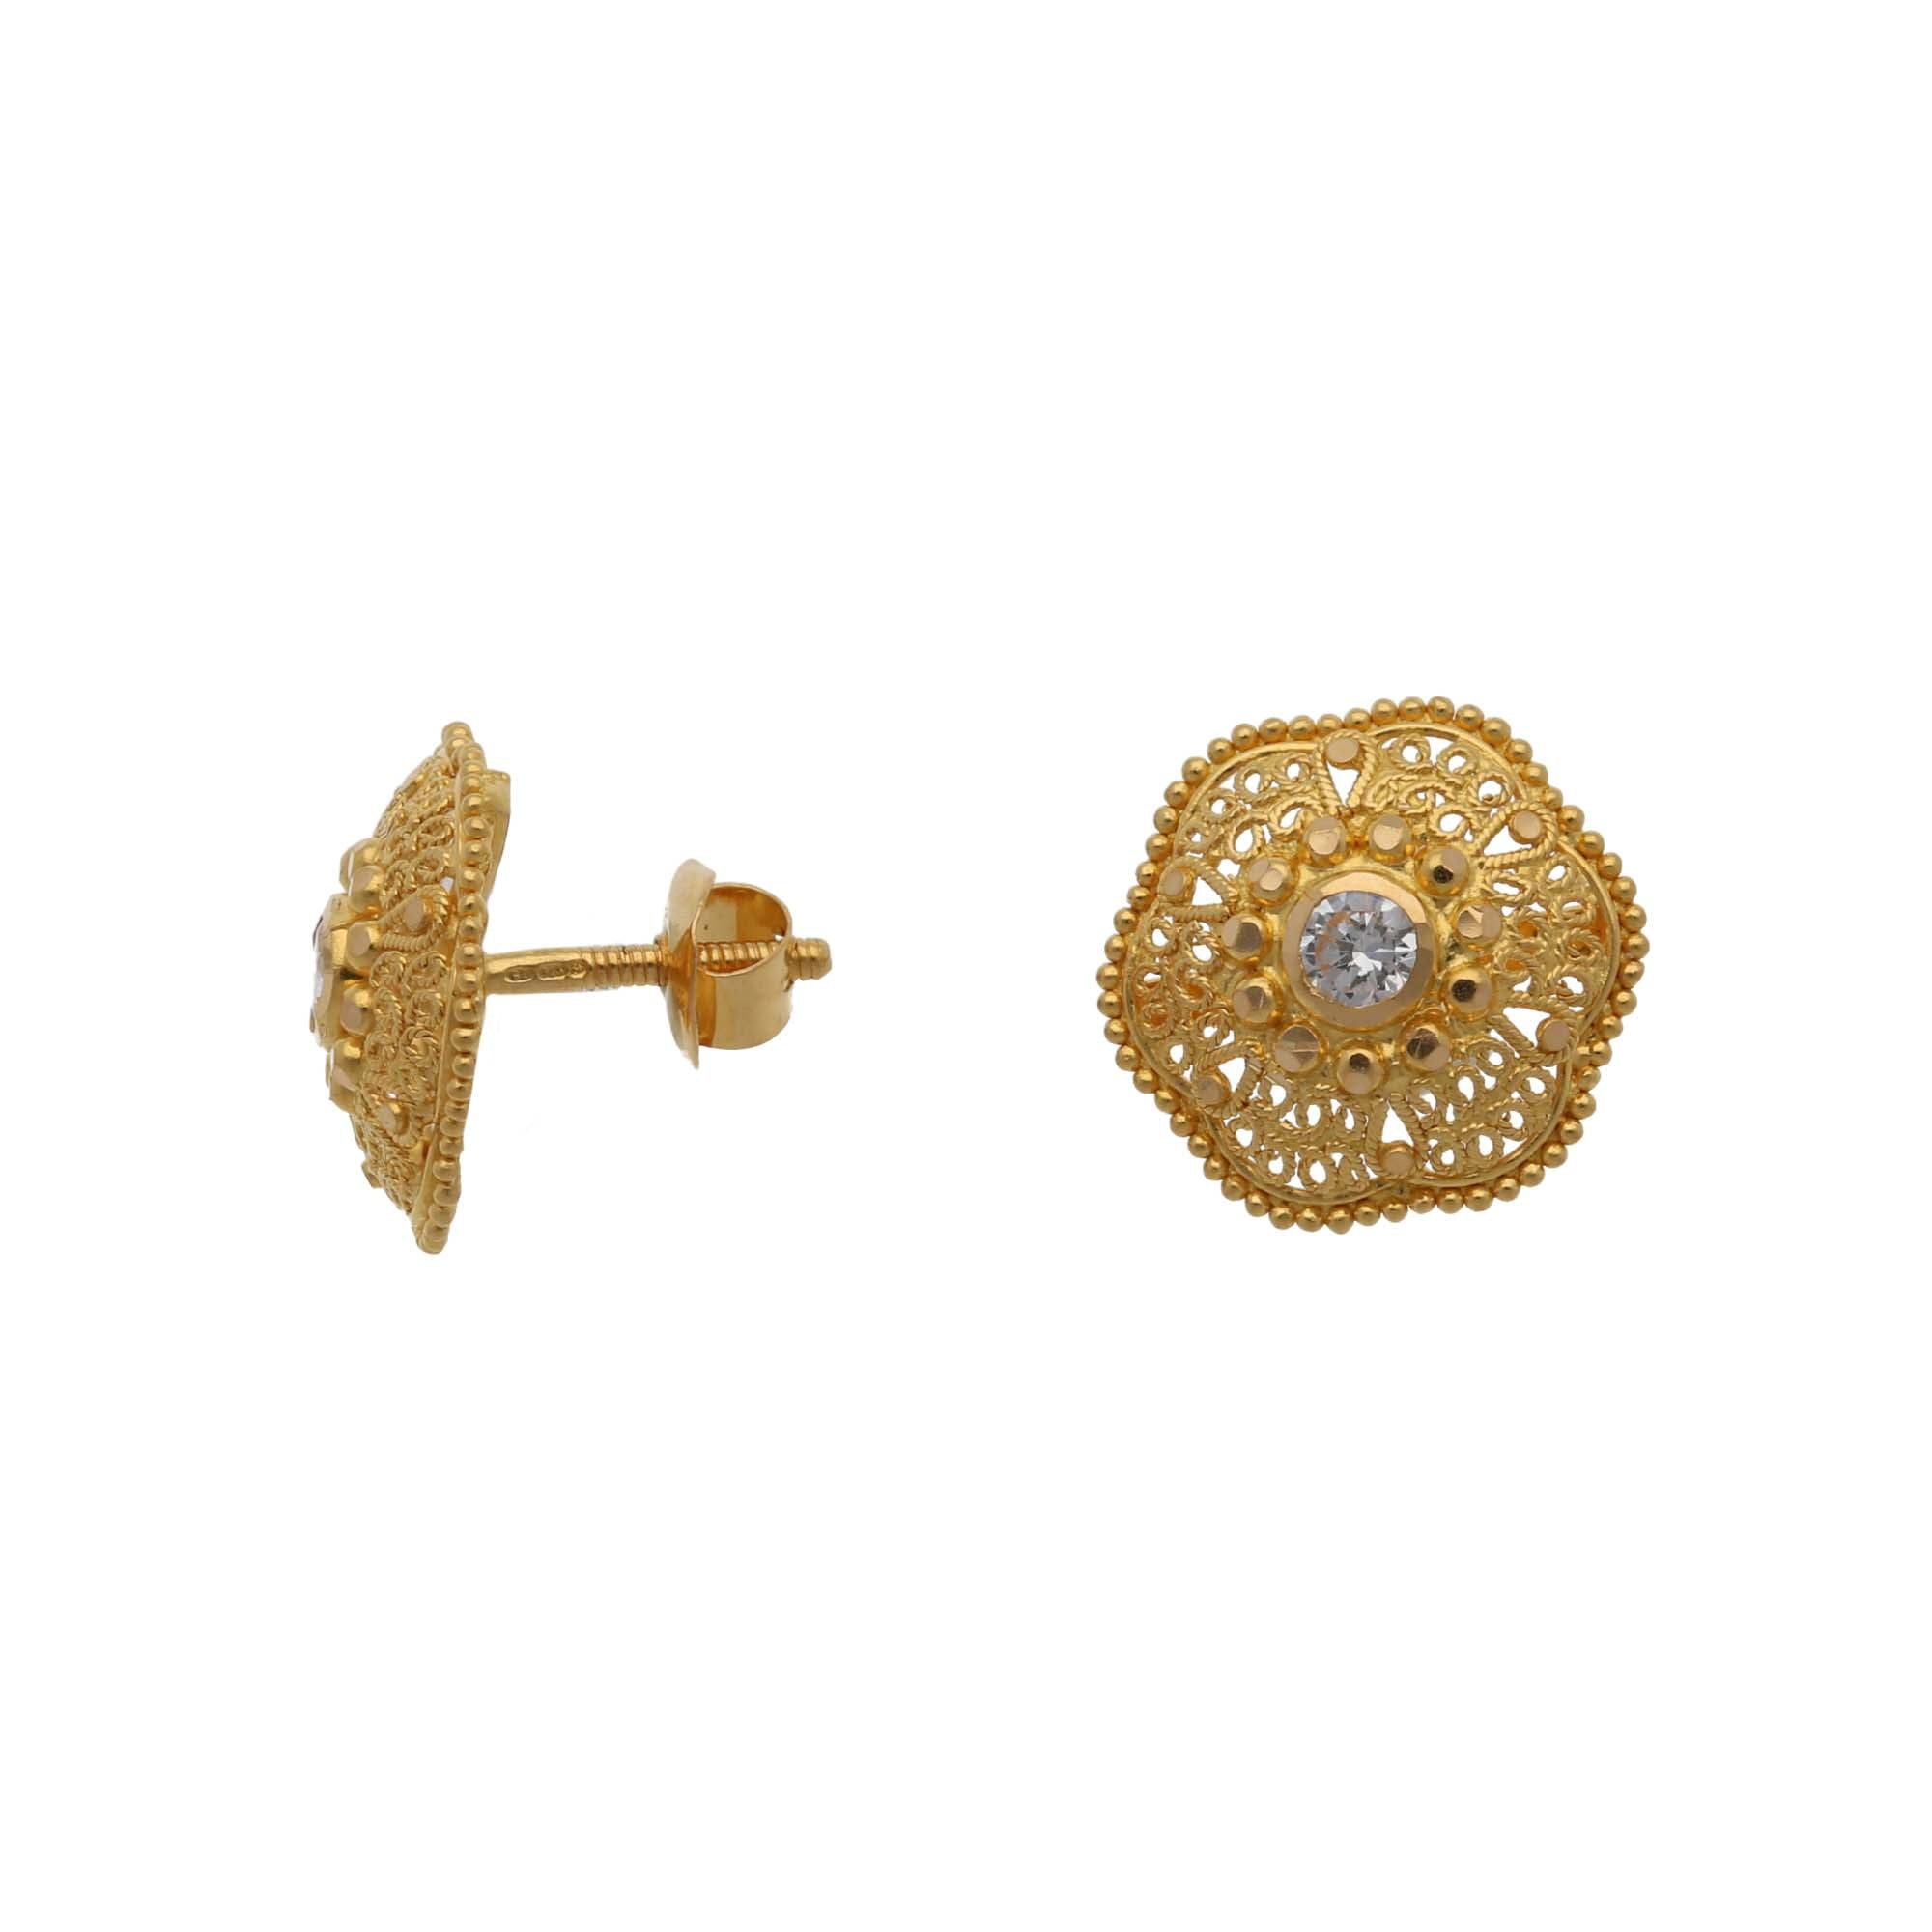 22ct Gold Cubic Zirconia Ladies Dress/Cocktail Earrings